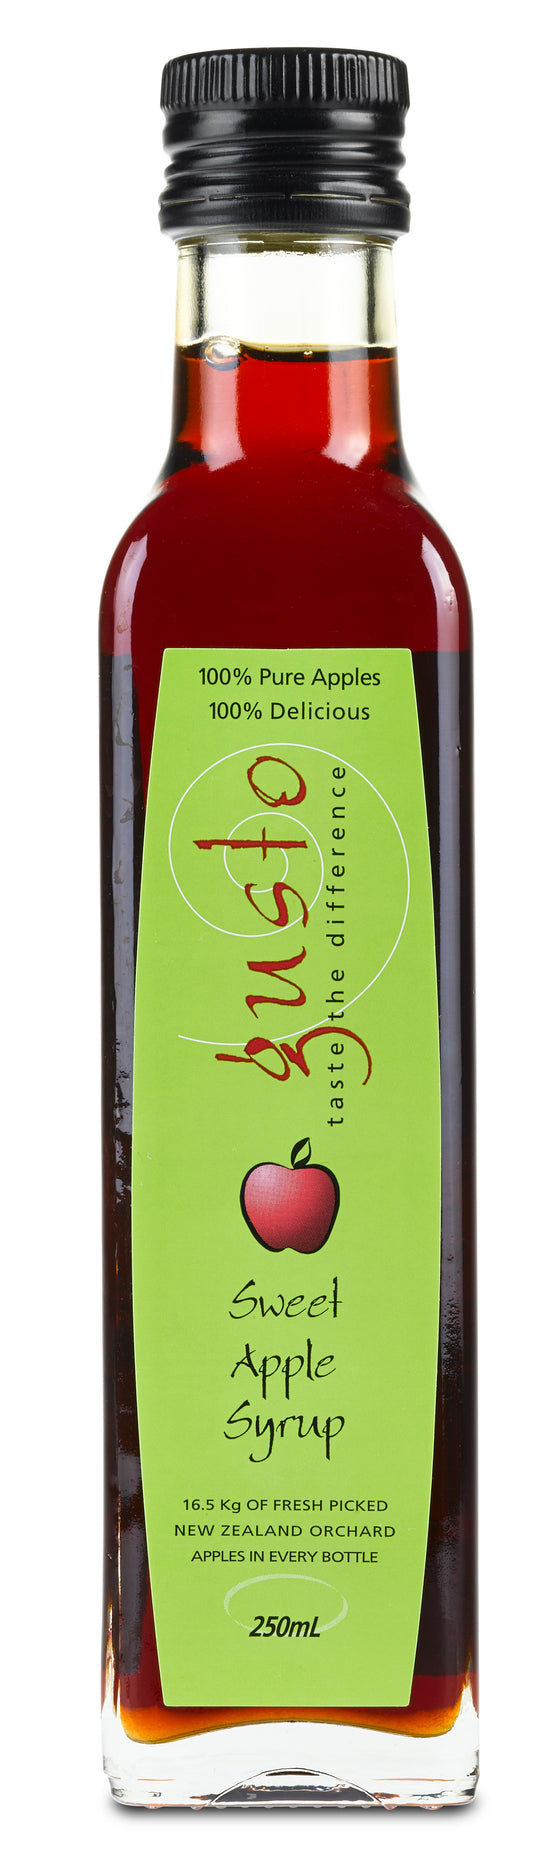 Culley's Apple syrup sweet. 250ml